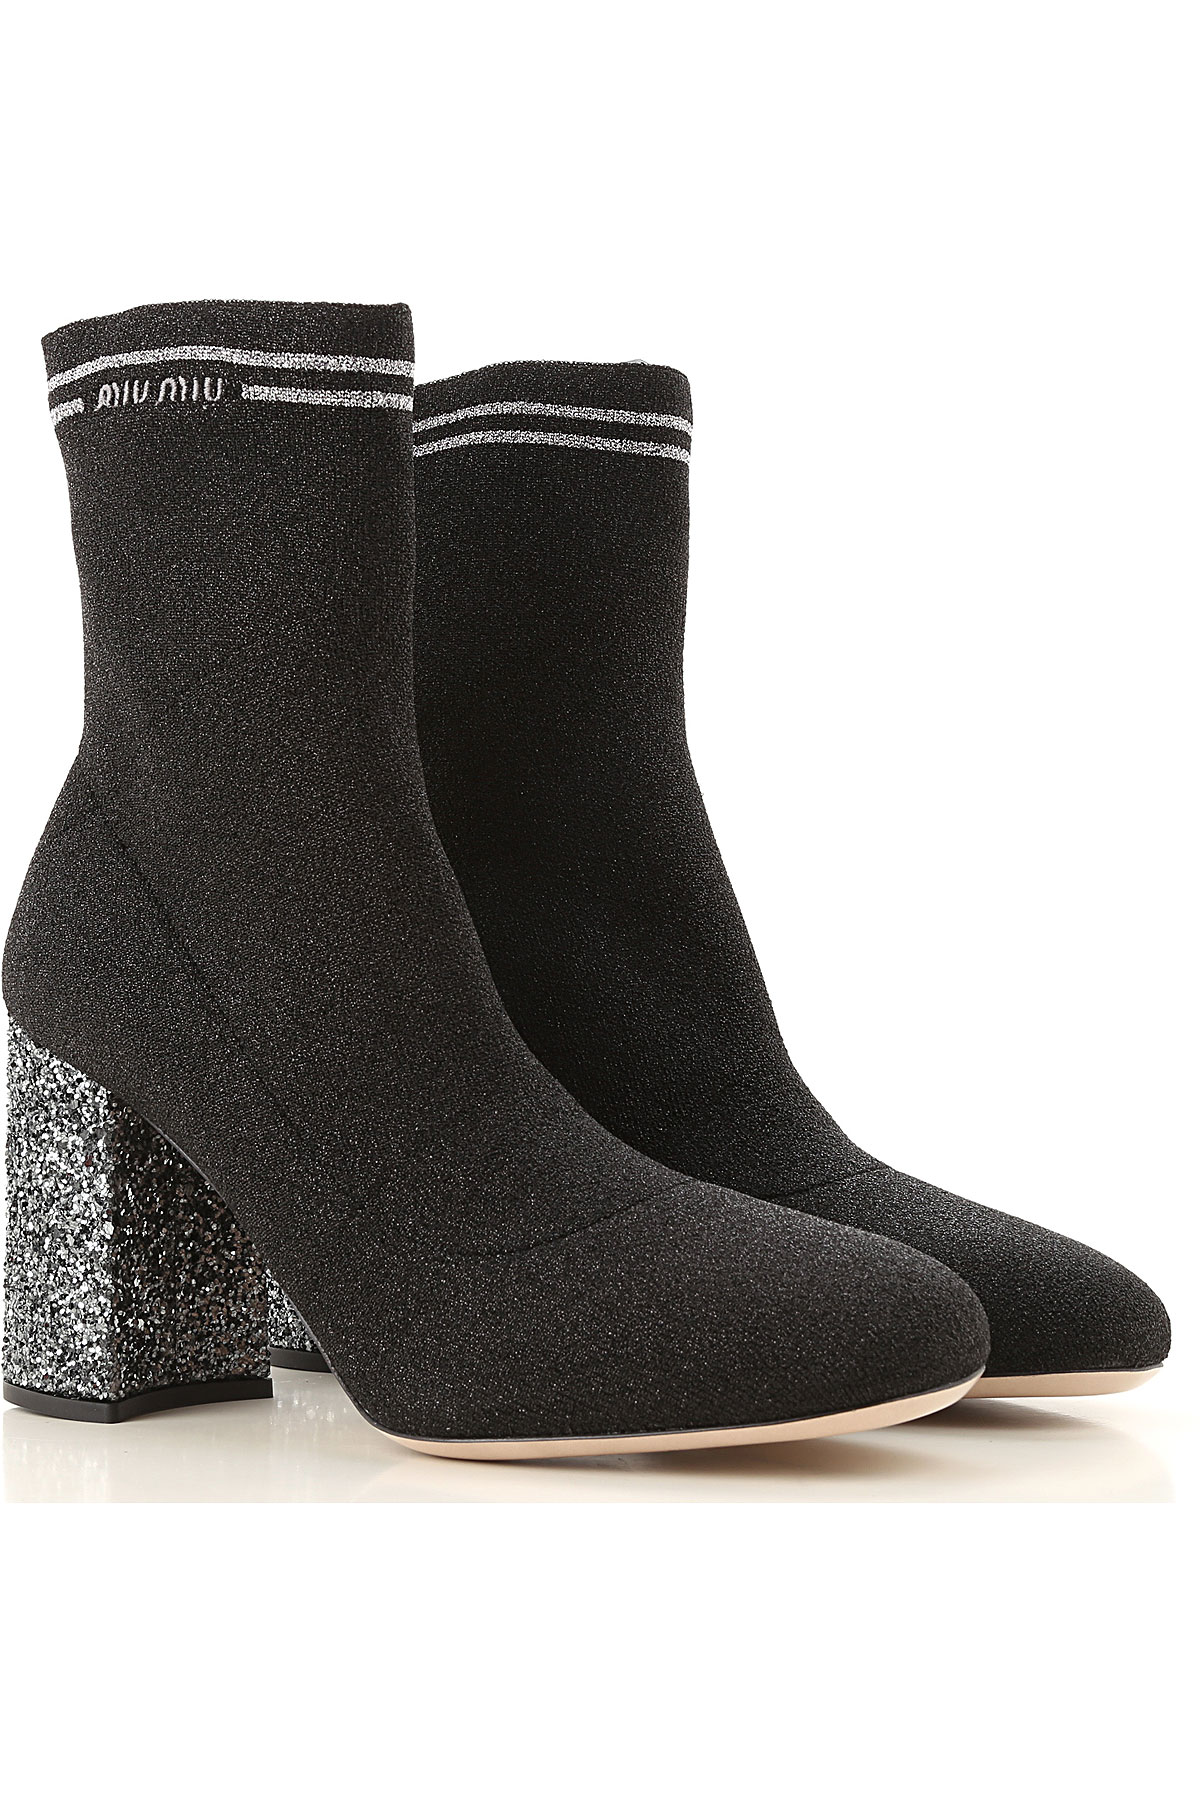 Miu Miu Boots for Women, Booties On Sale, Black, lurex, 2019, 7 7.5 8